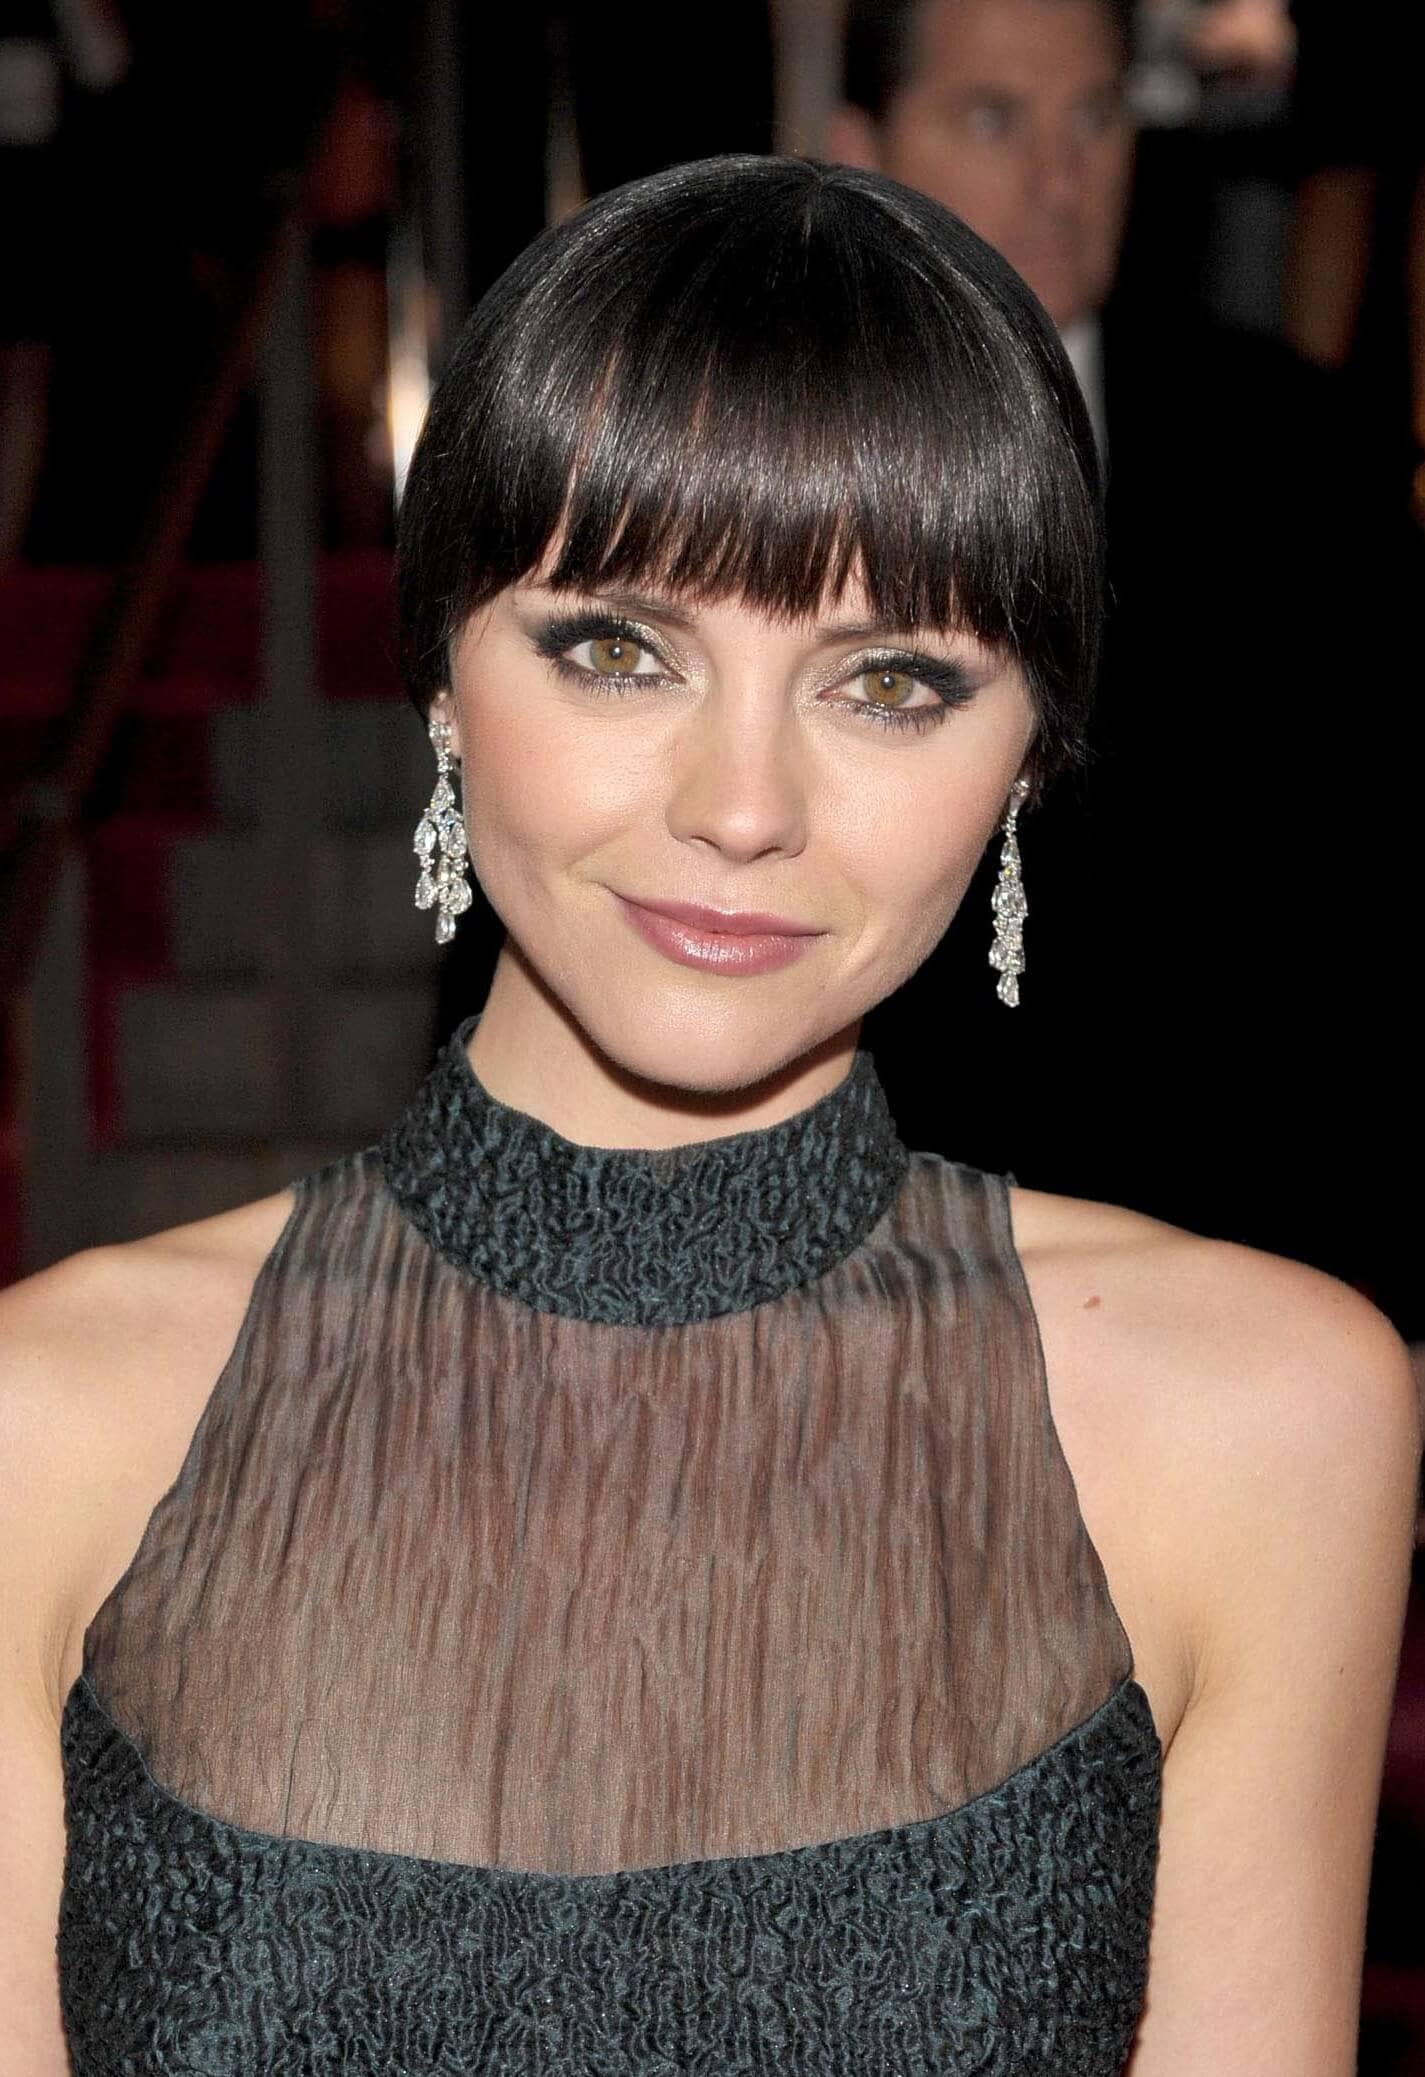 close up shot of christina ricci with blunt bang hairstyle that has wispy ends, wearing statement earrings and black sheer top on the red carpet